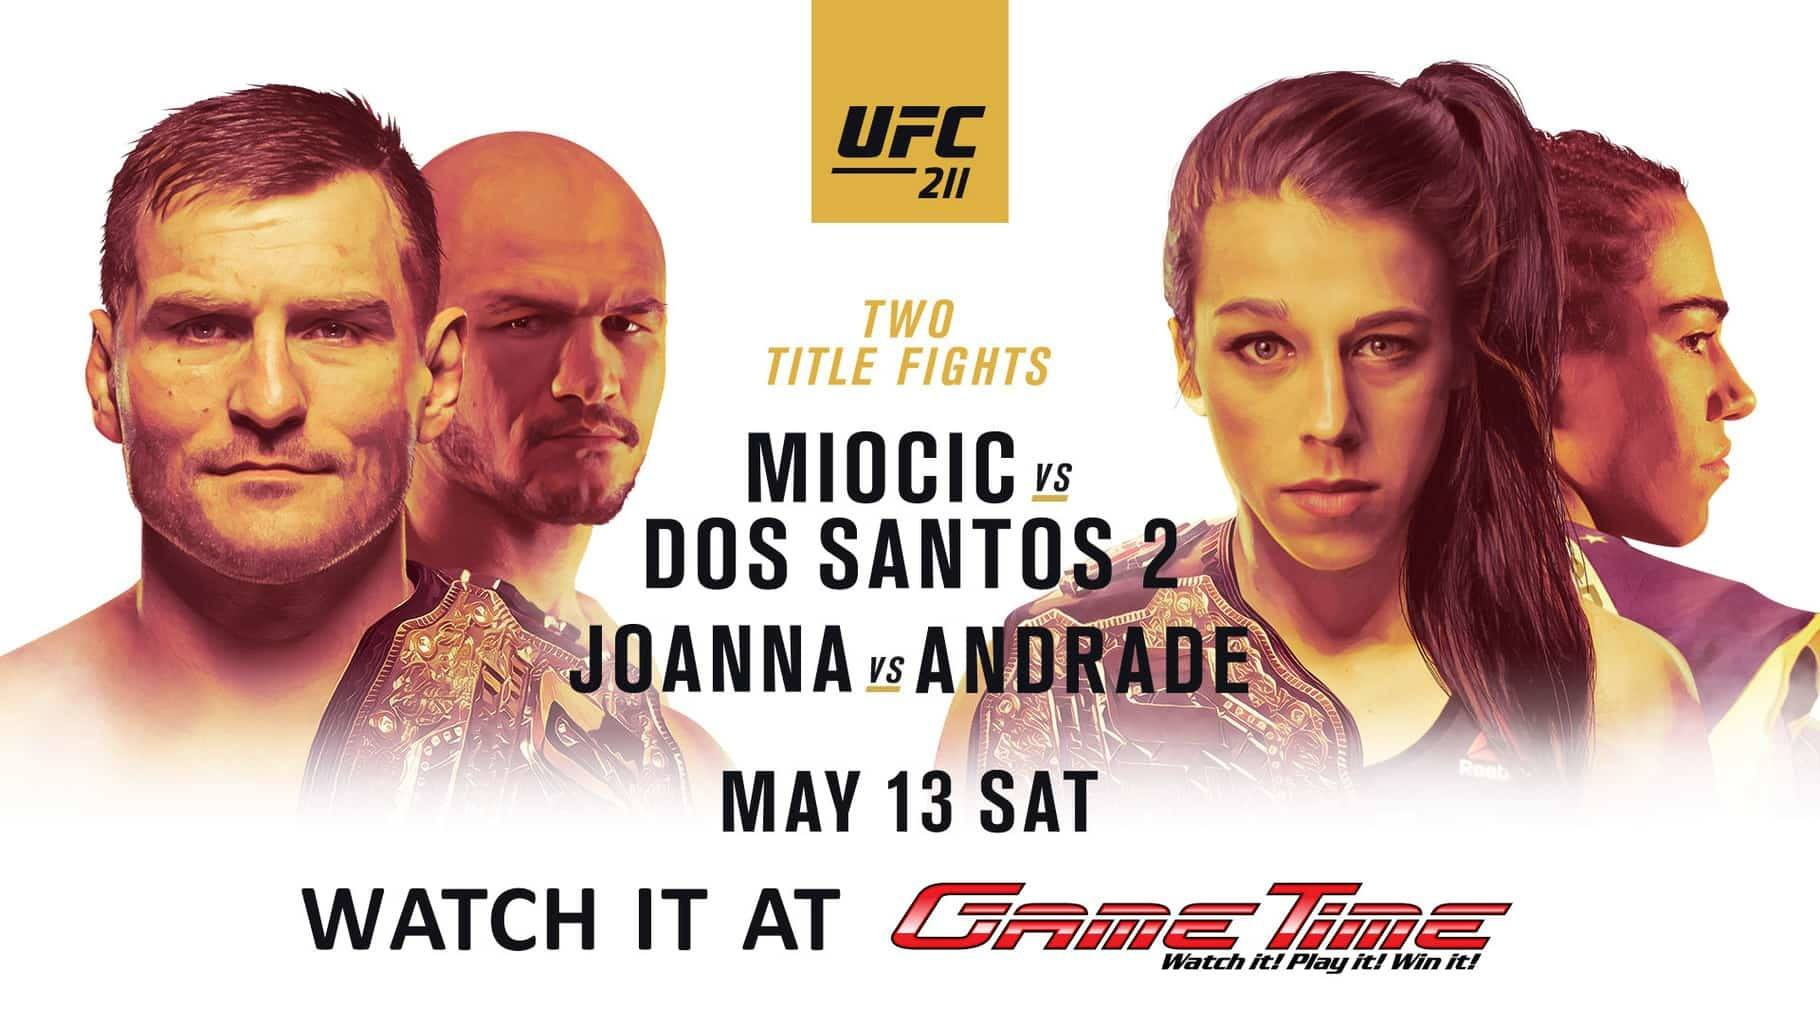 Watch-UFC-211-at-GameTime-Sports-Bar-Miami-Tampa-Fort-Myers-Ybor-City-SWFL